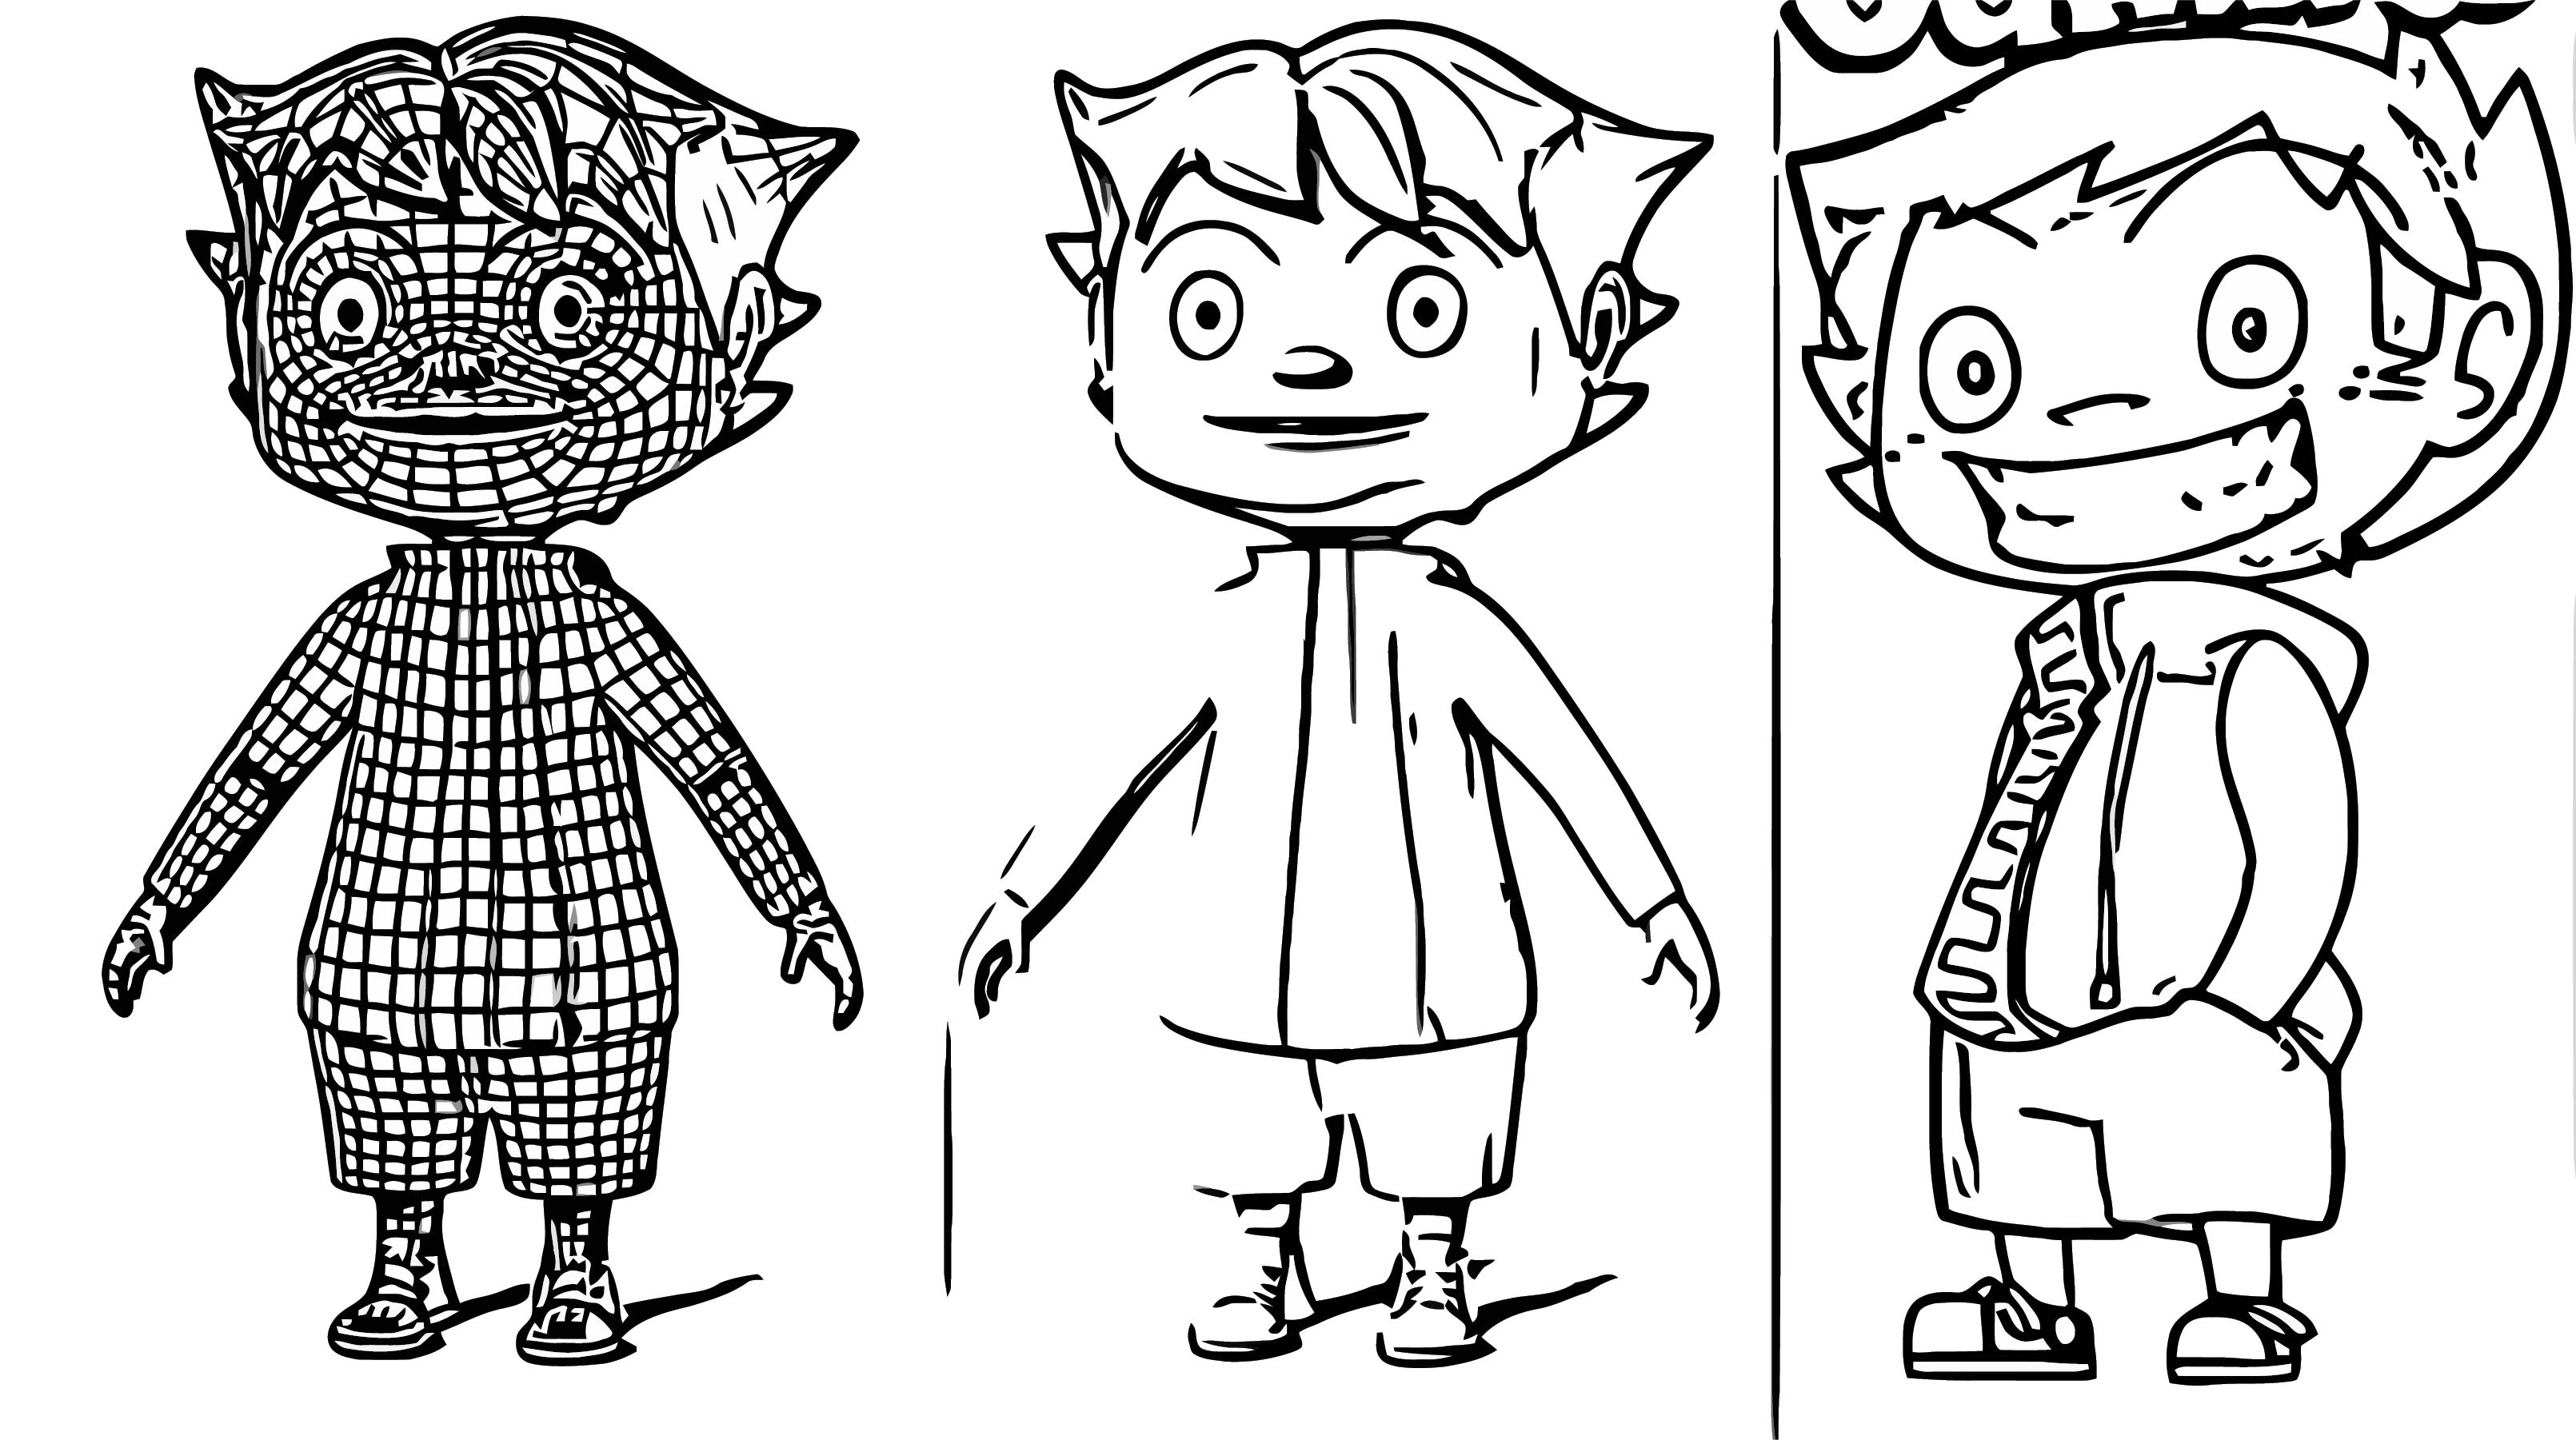 Jaimito With Reference Cartoonize Coloring Page